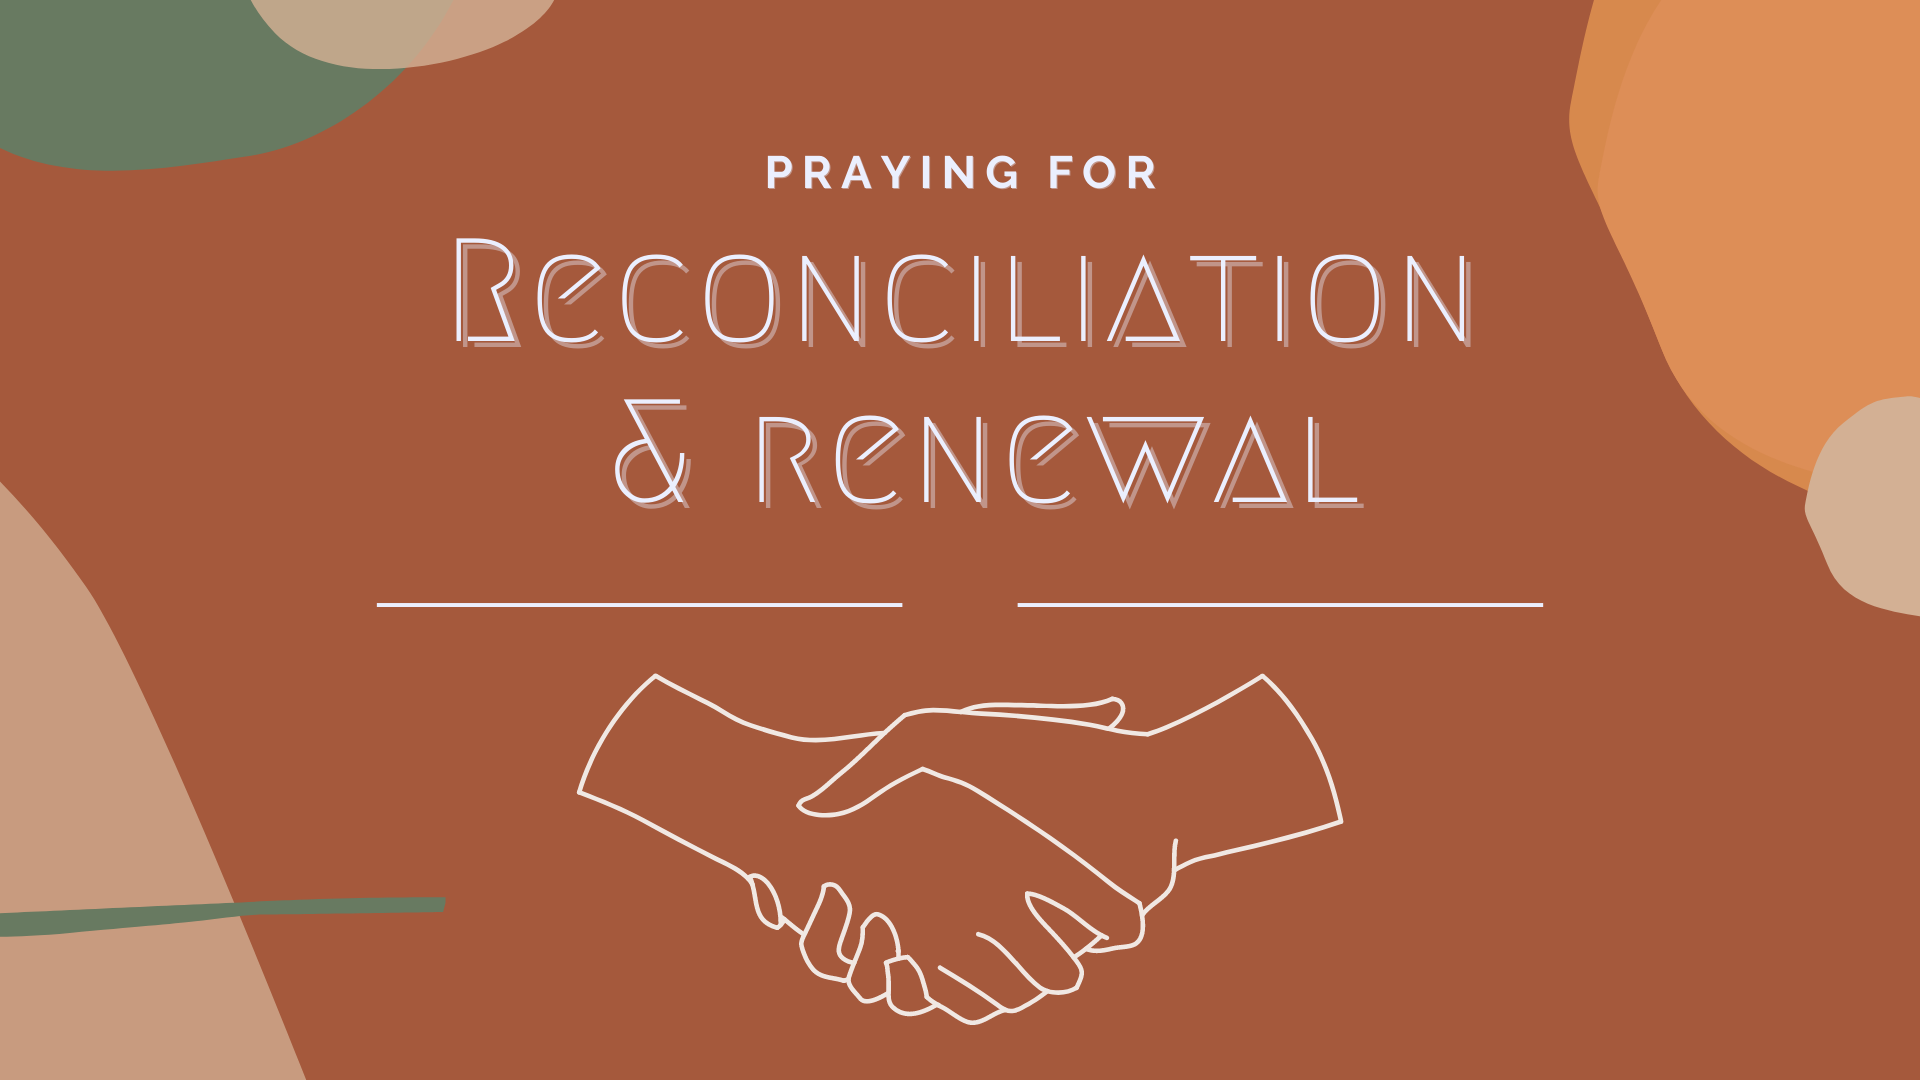 Praying for Reconciliation and Renewal